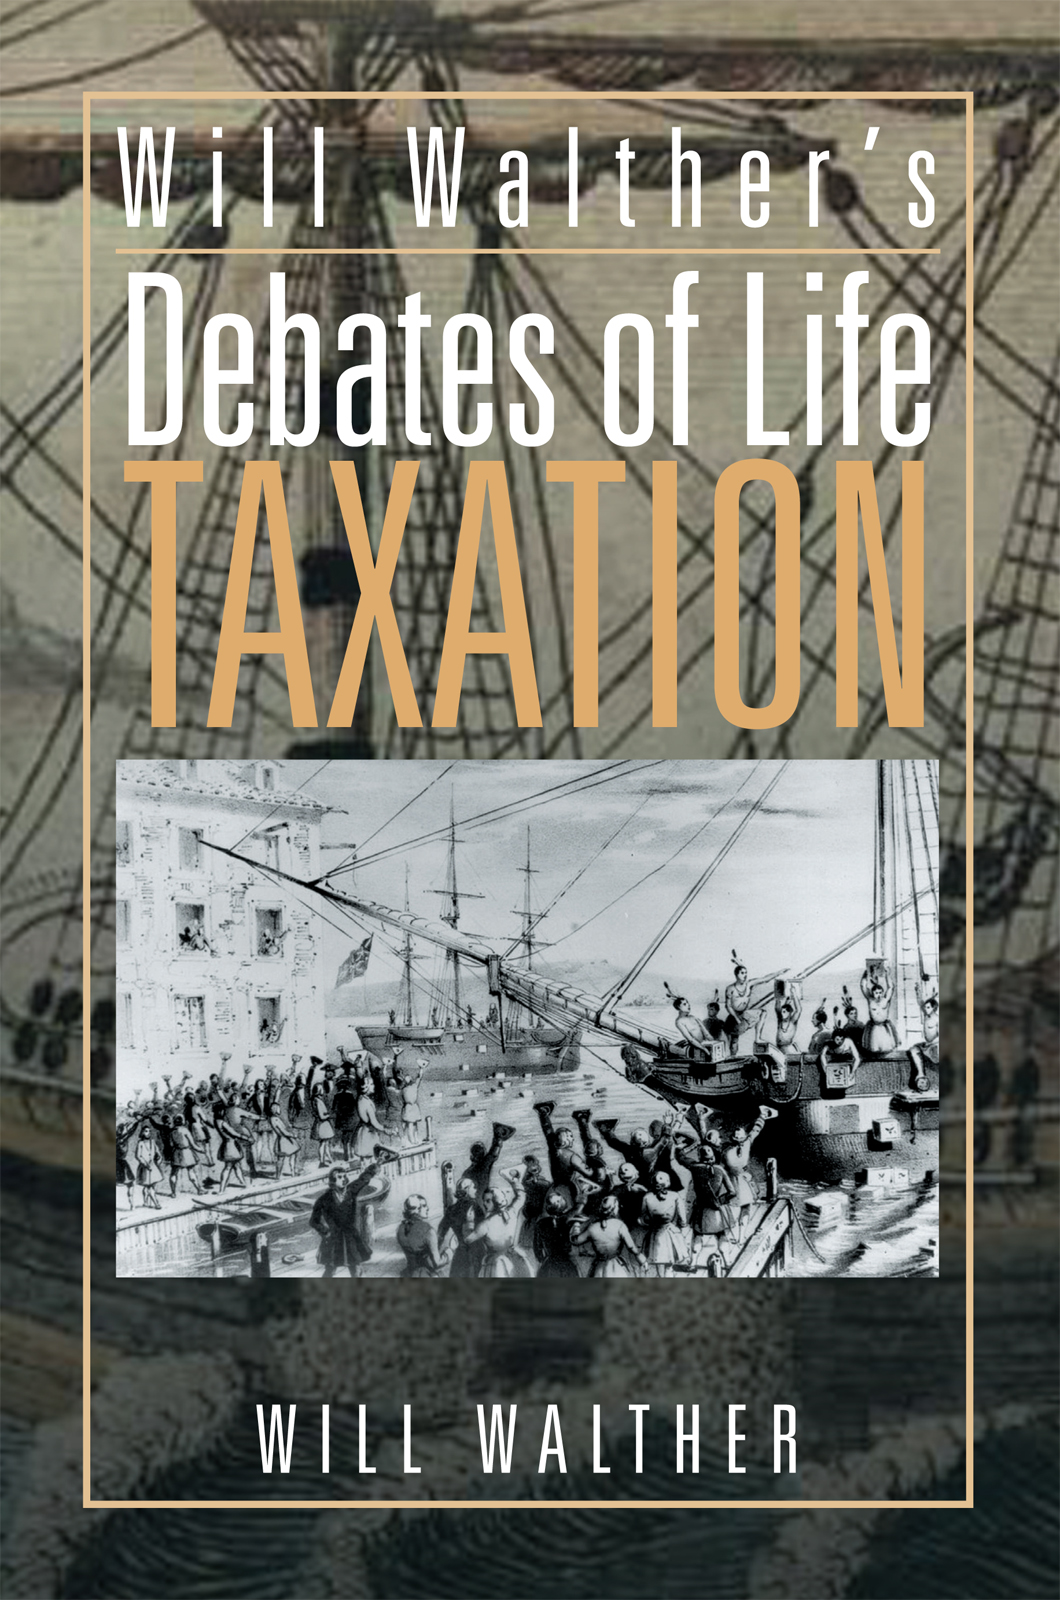 Will Walther's debates of Life - Taxation